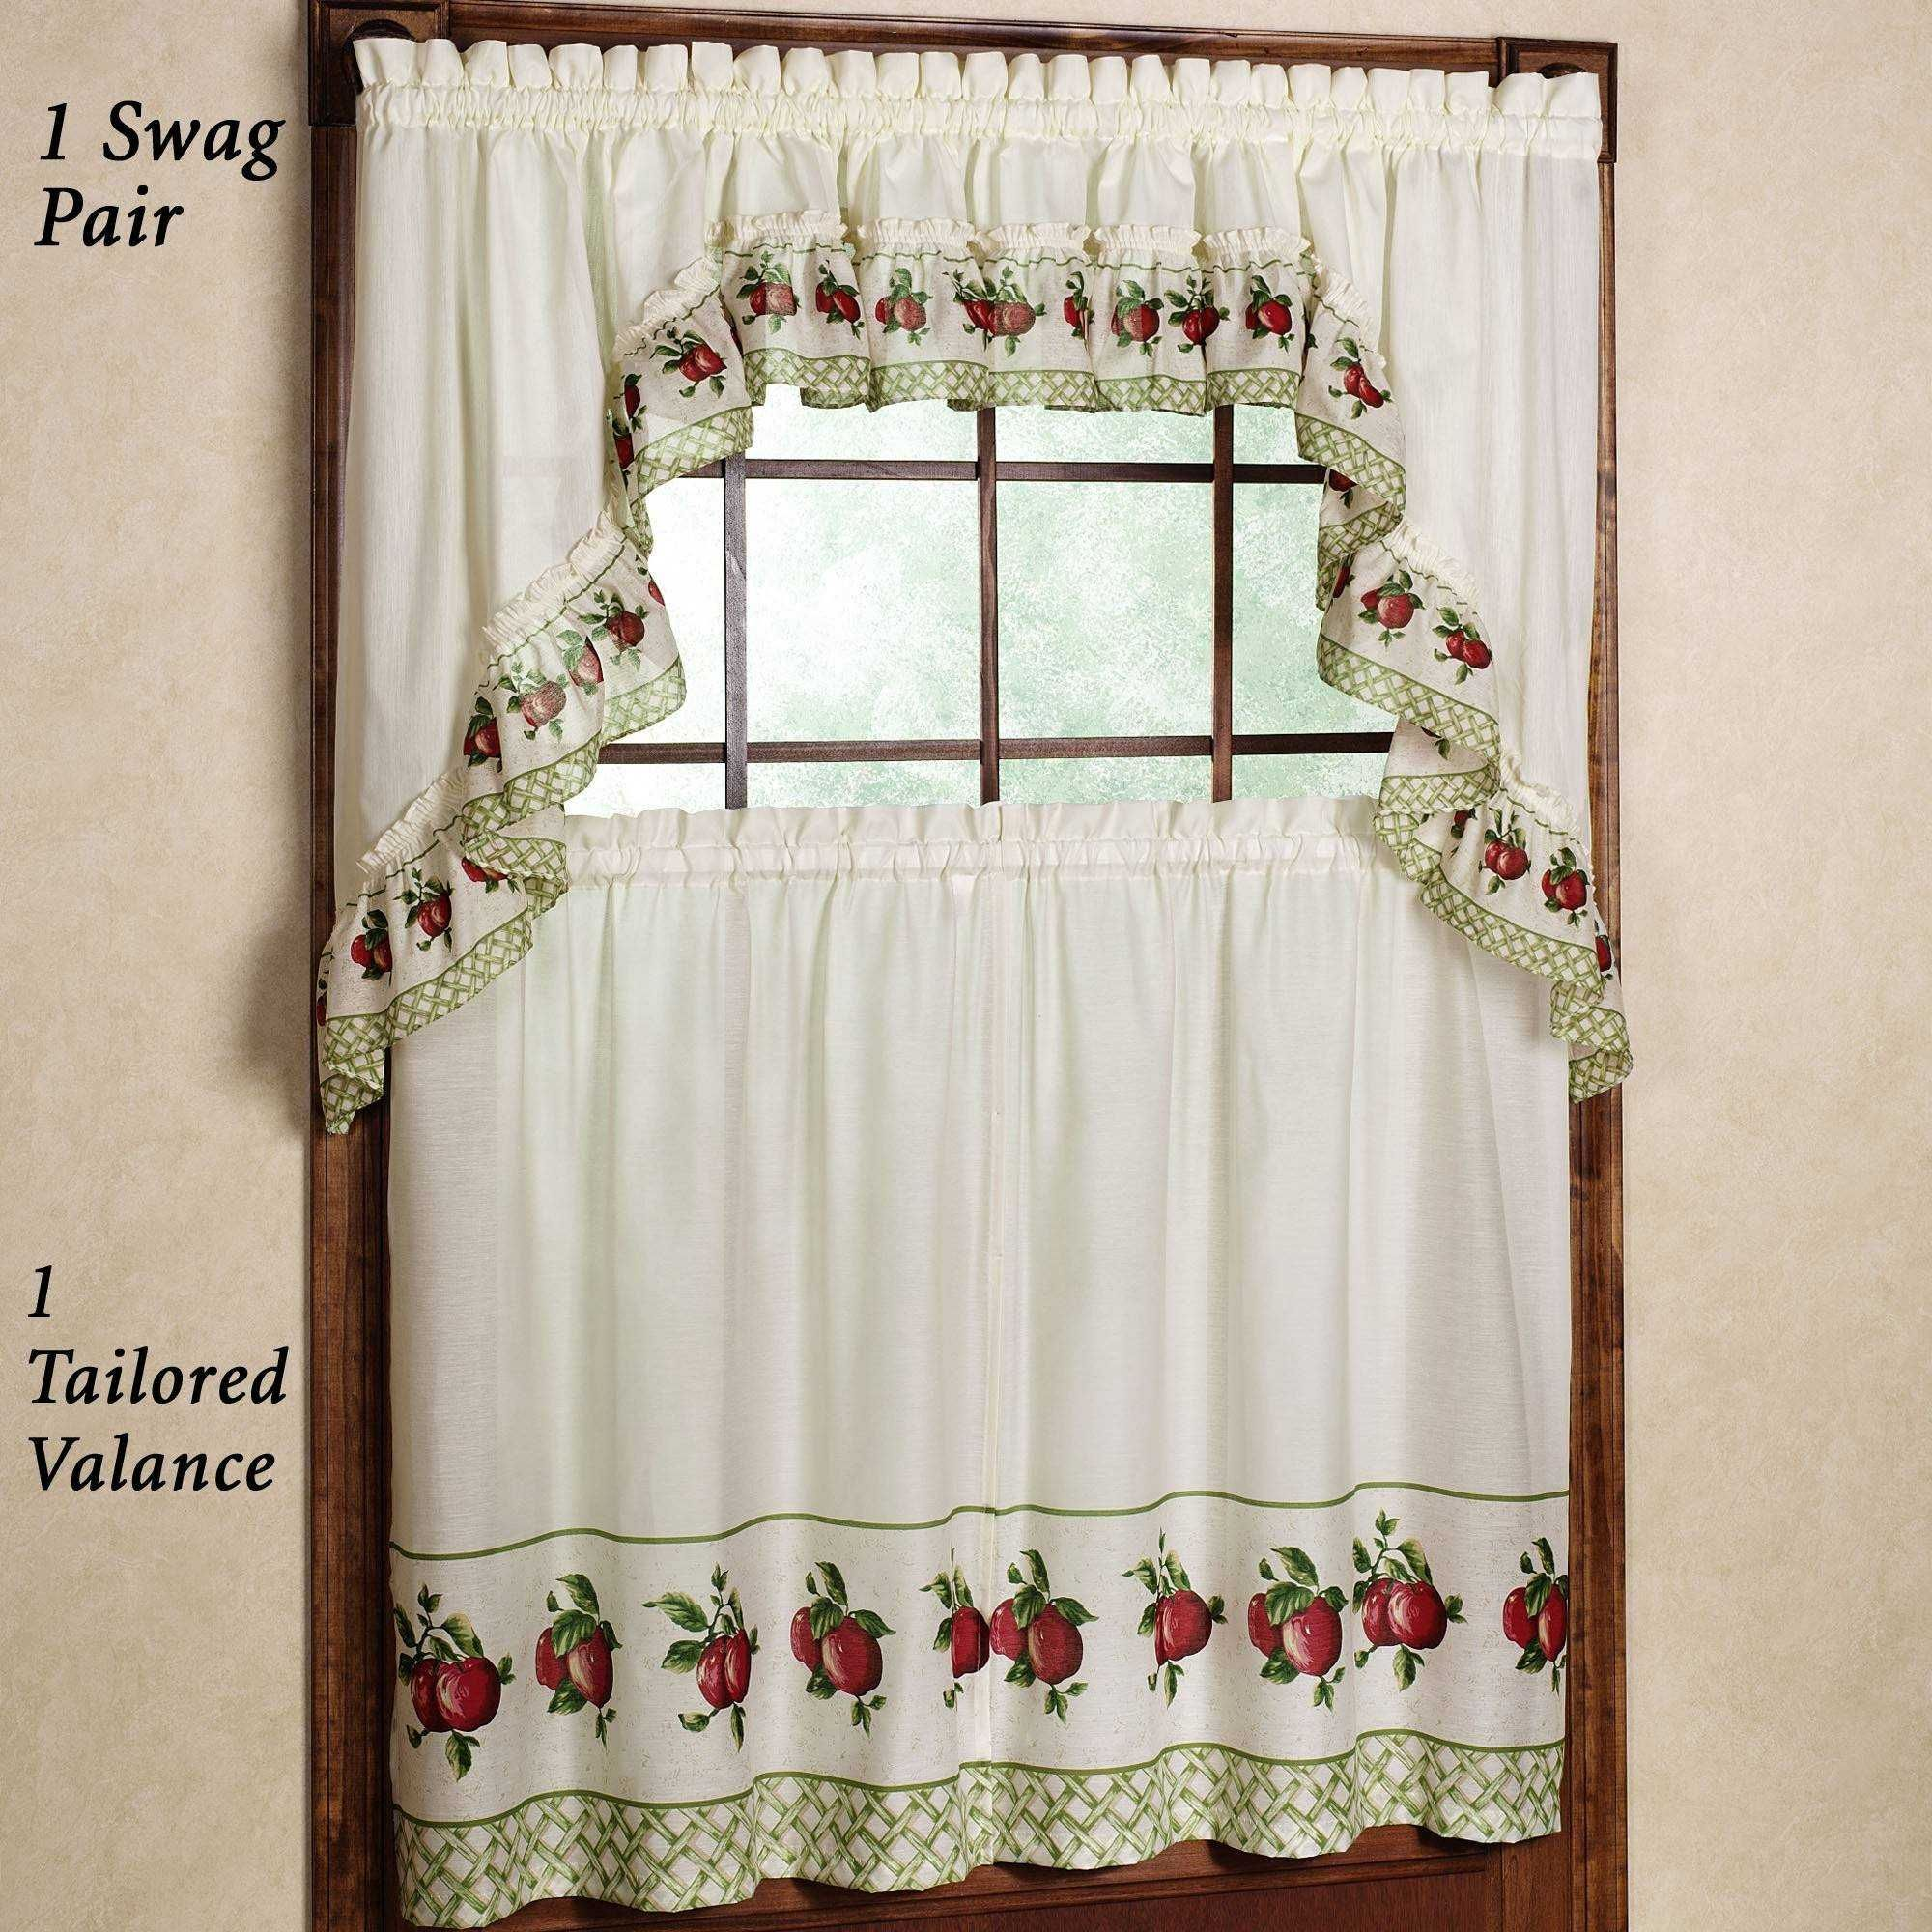 Stylish Jcpenney Kitchen Curtains Image | Kitchen Gallery ...